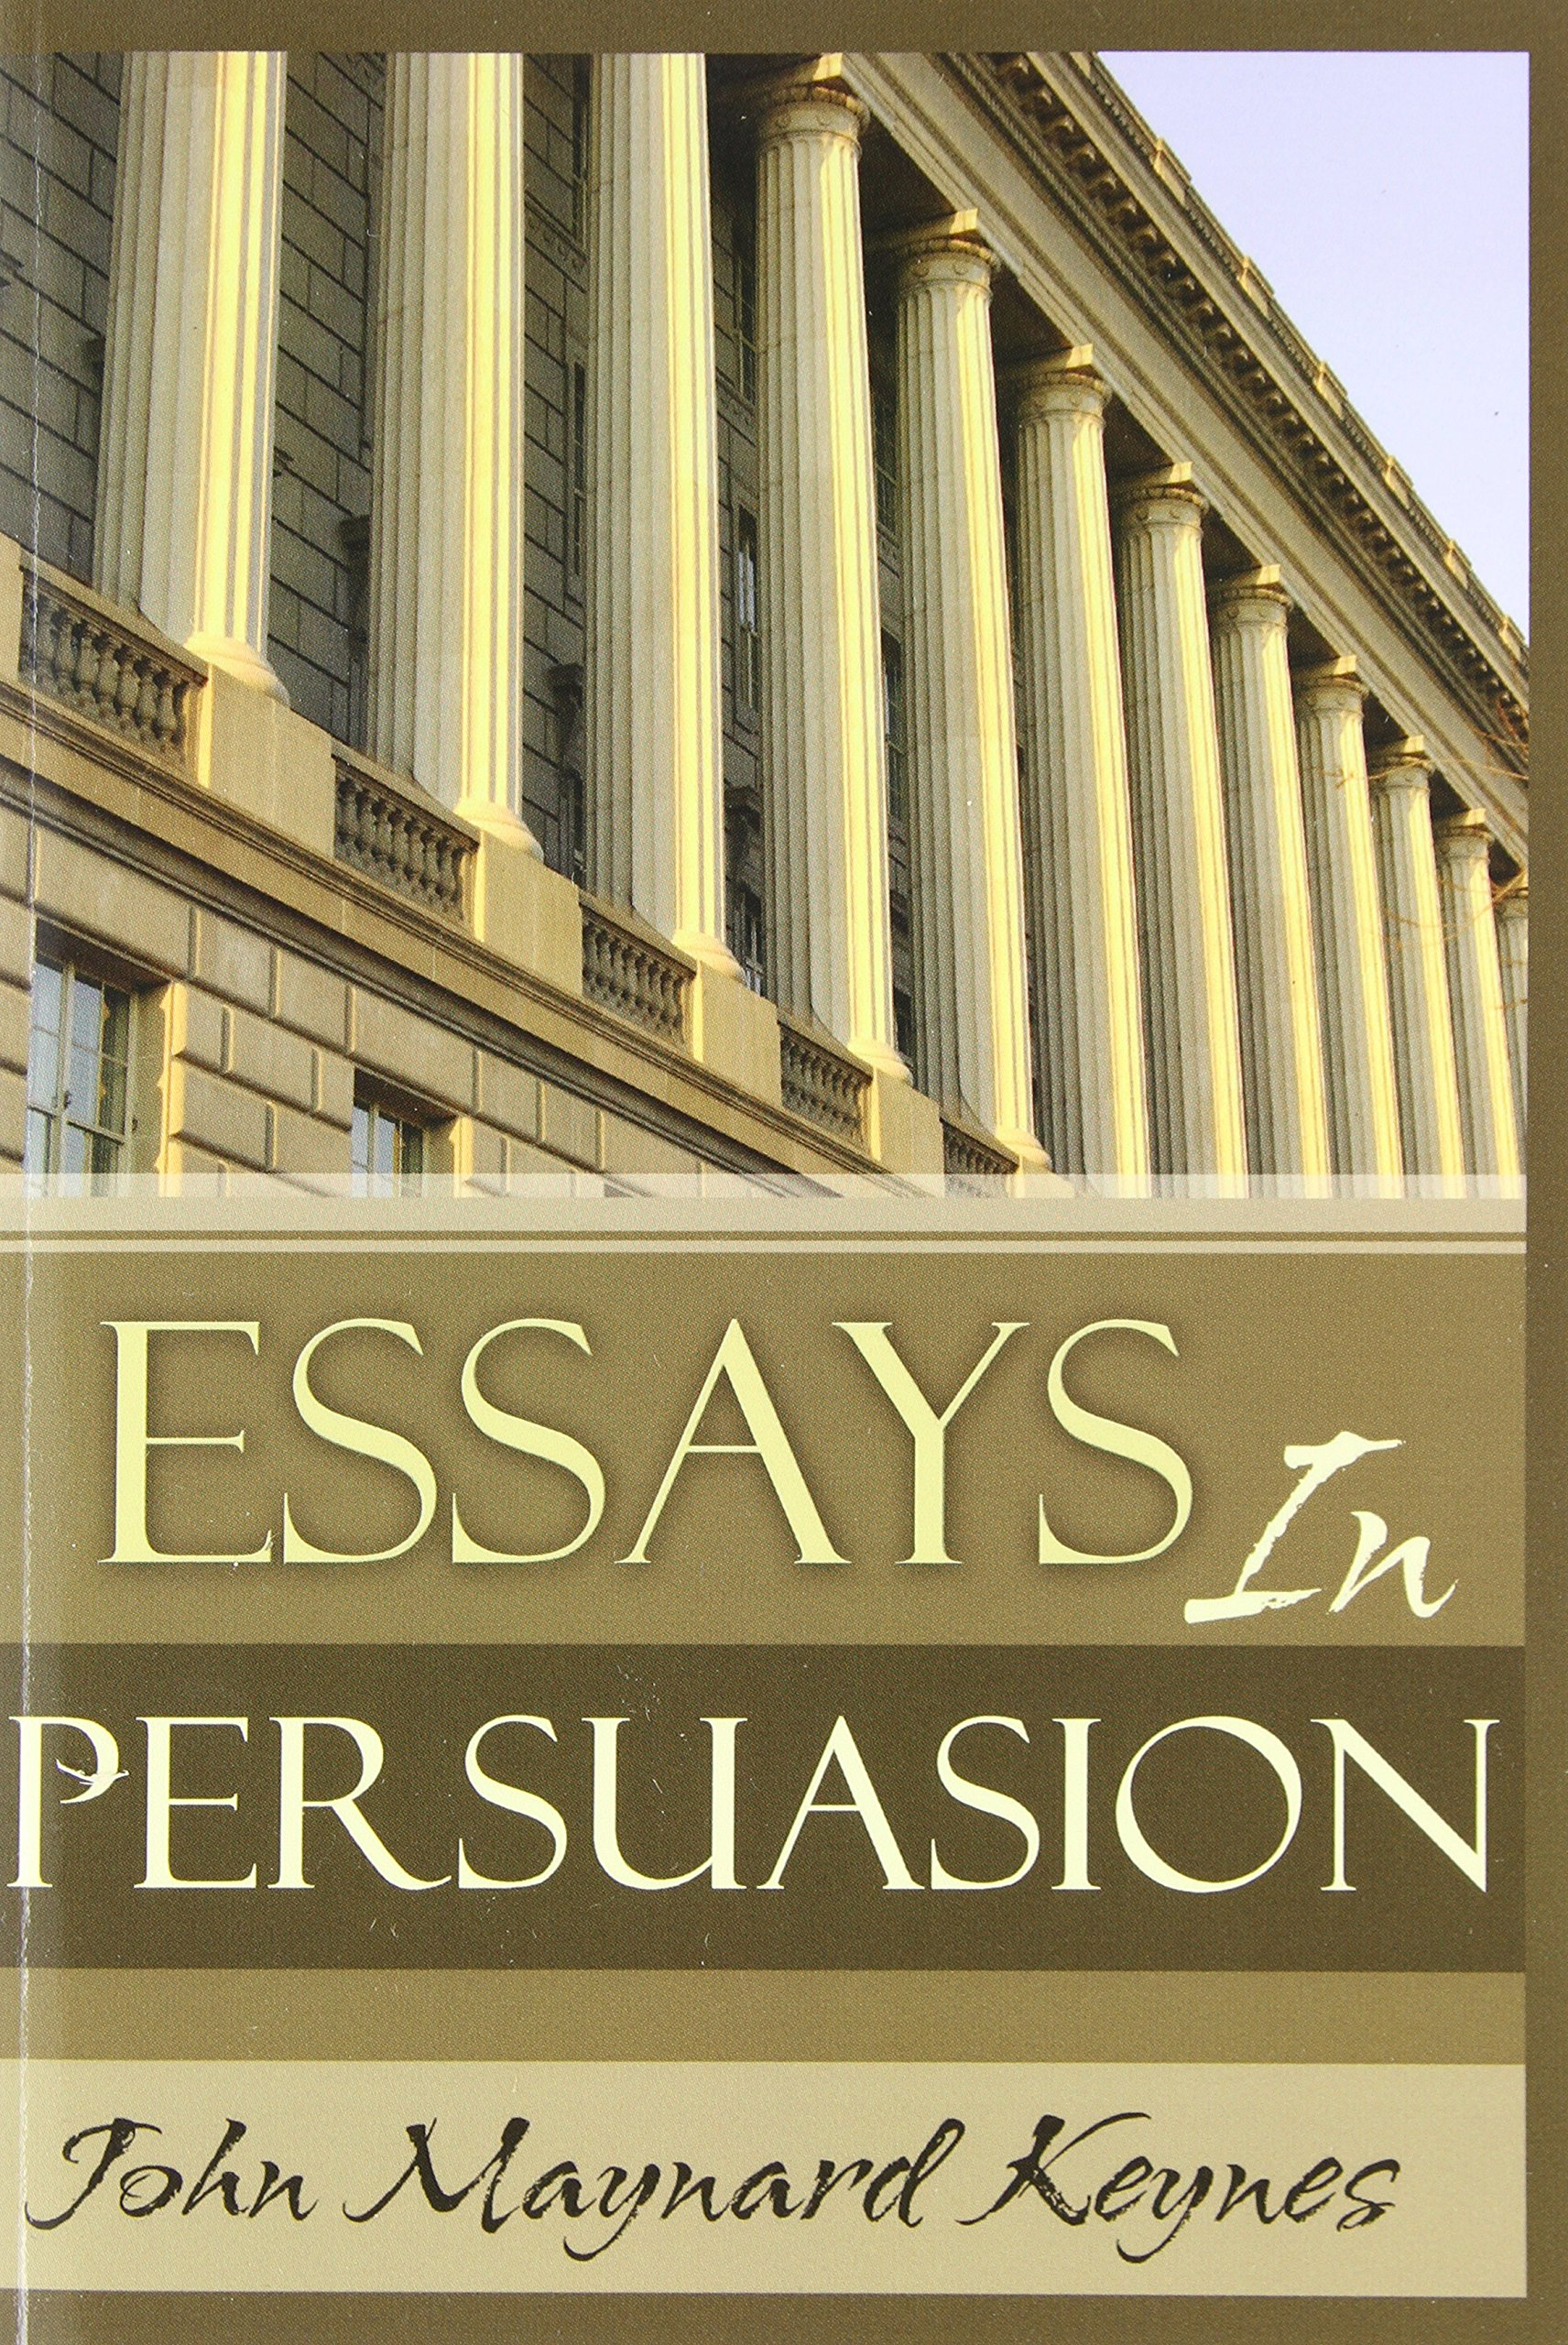 Essays In Persuasion John Maynard Keynes  Amazon AHzBUBixL